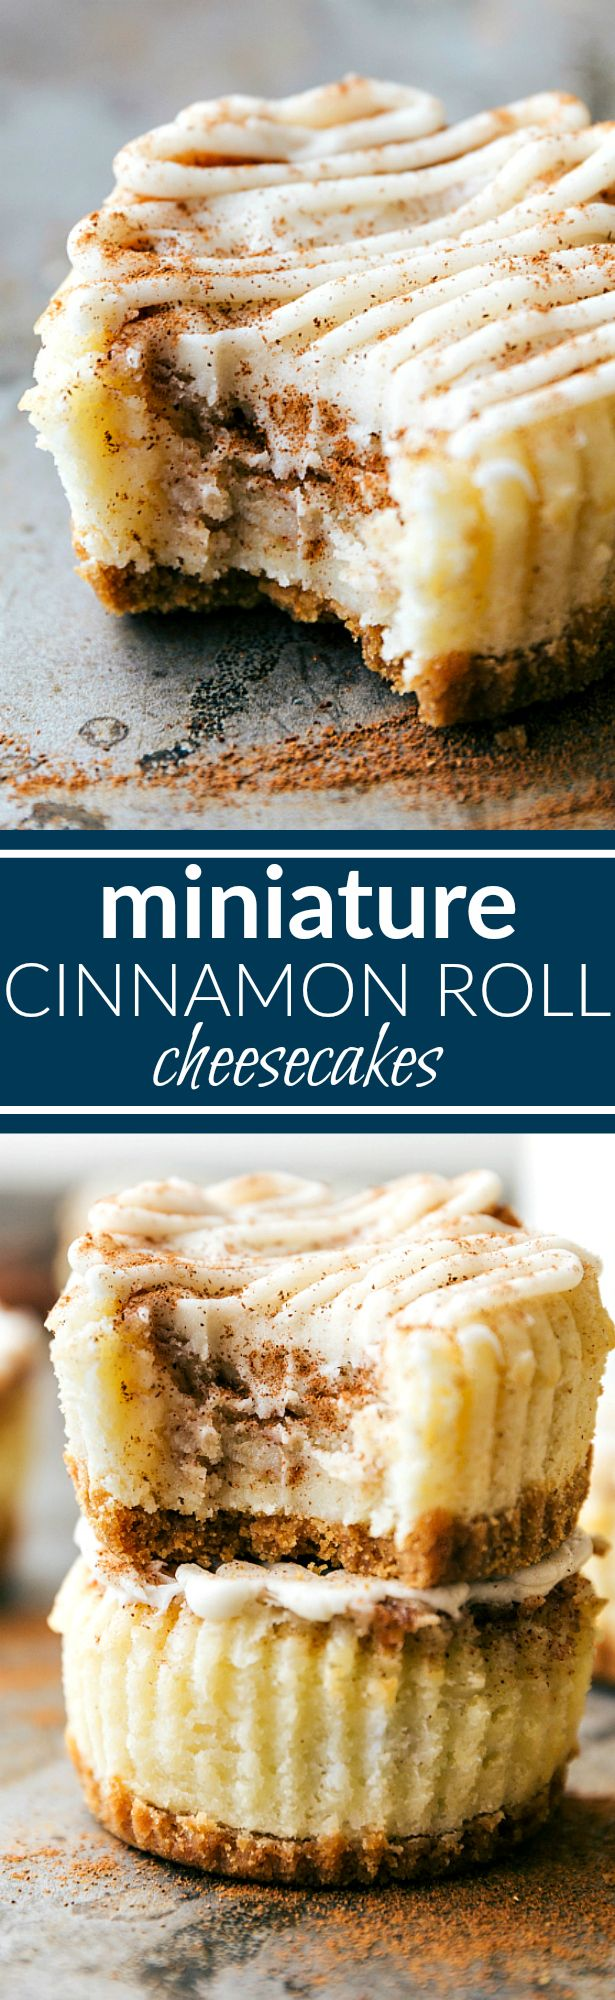 The BEST DESSERT! Miniature cinnamon roll cheesecakes with a delicious cinnamon swirl and cream cheese frosting topping! Via chelseasmessyapron.com: